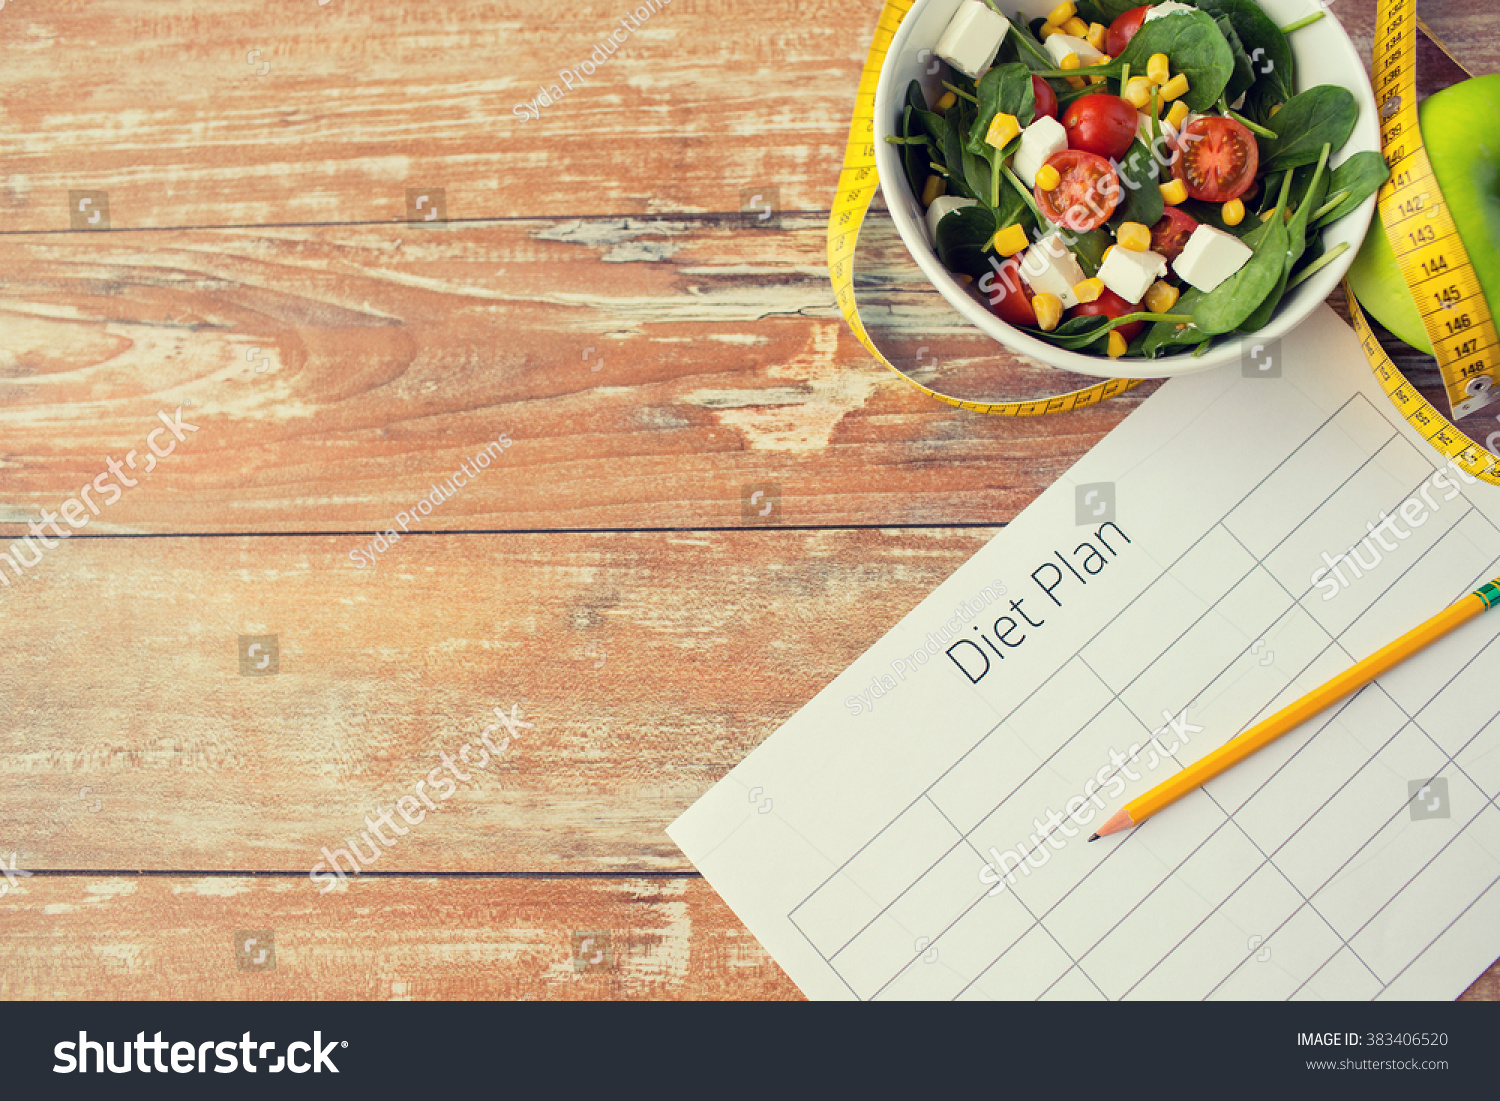 healthy eating, dieting, slimming and weigh loss concept - close up of diet plan paper green apple, measuring tape and salad #383406520